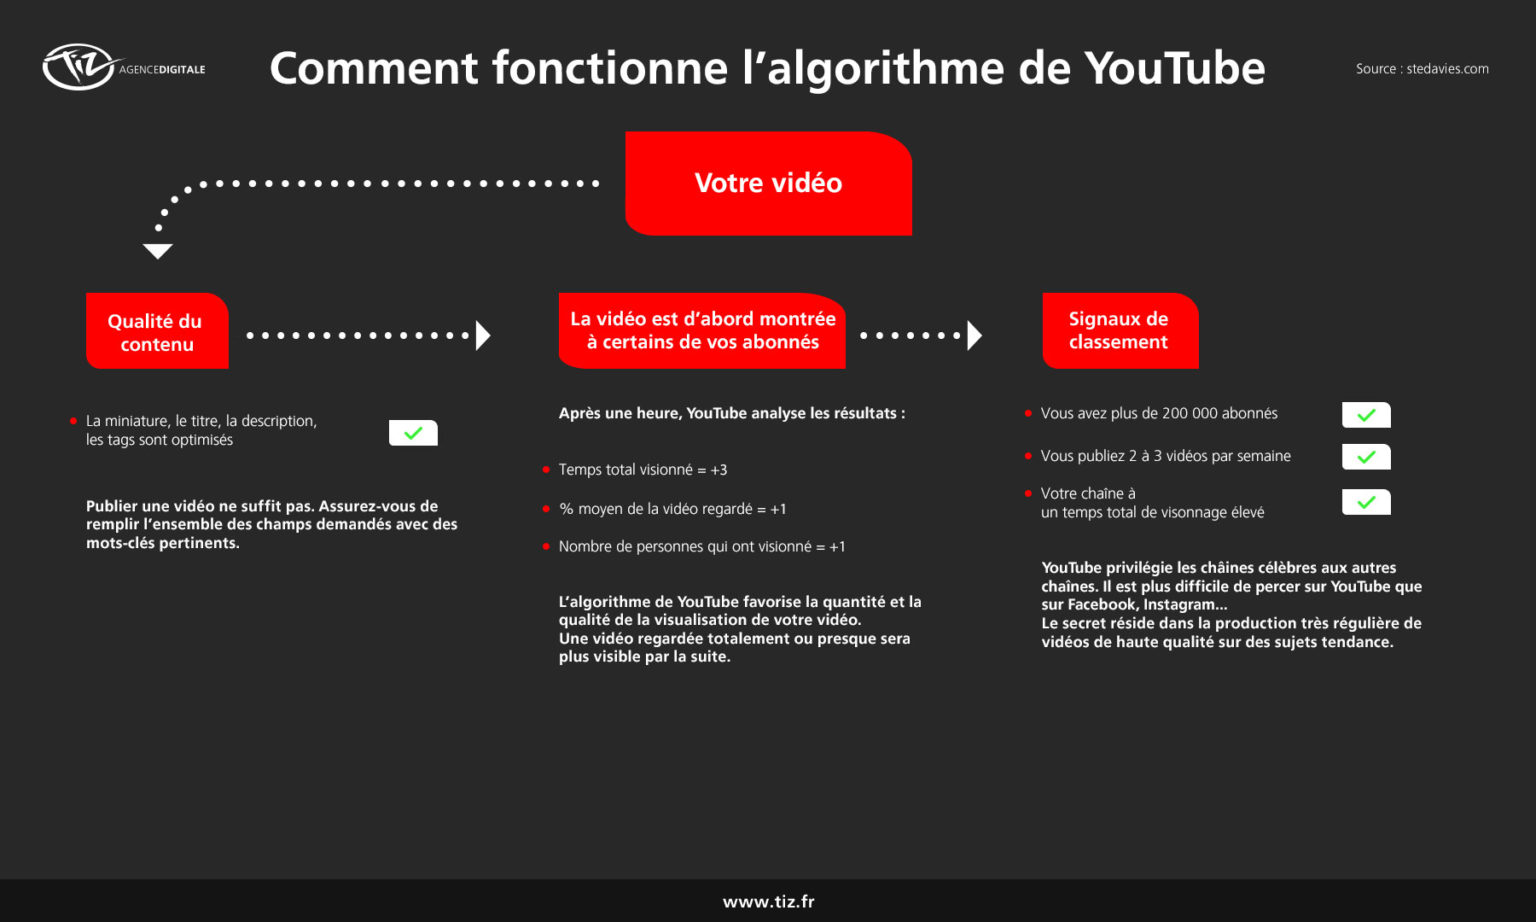 Comment hacker Linkedin, Twitter, Youtube, Facebook, Pinterest, Instagram... ? Jouez simplement avec l'algorithme ! 7